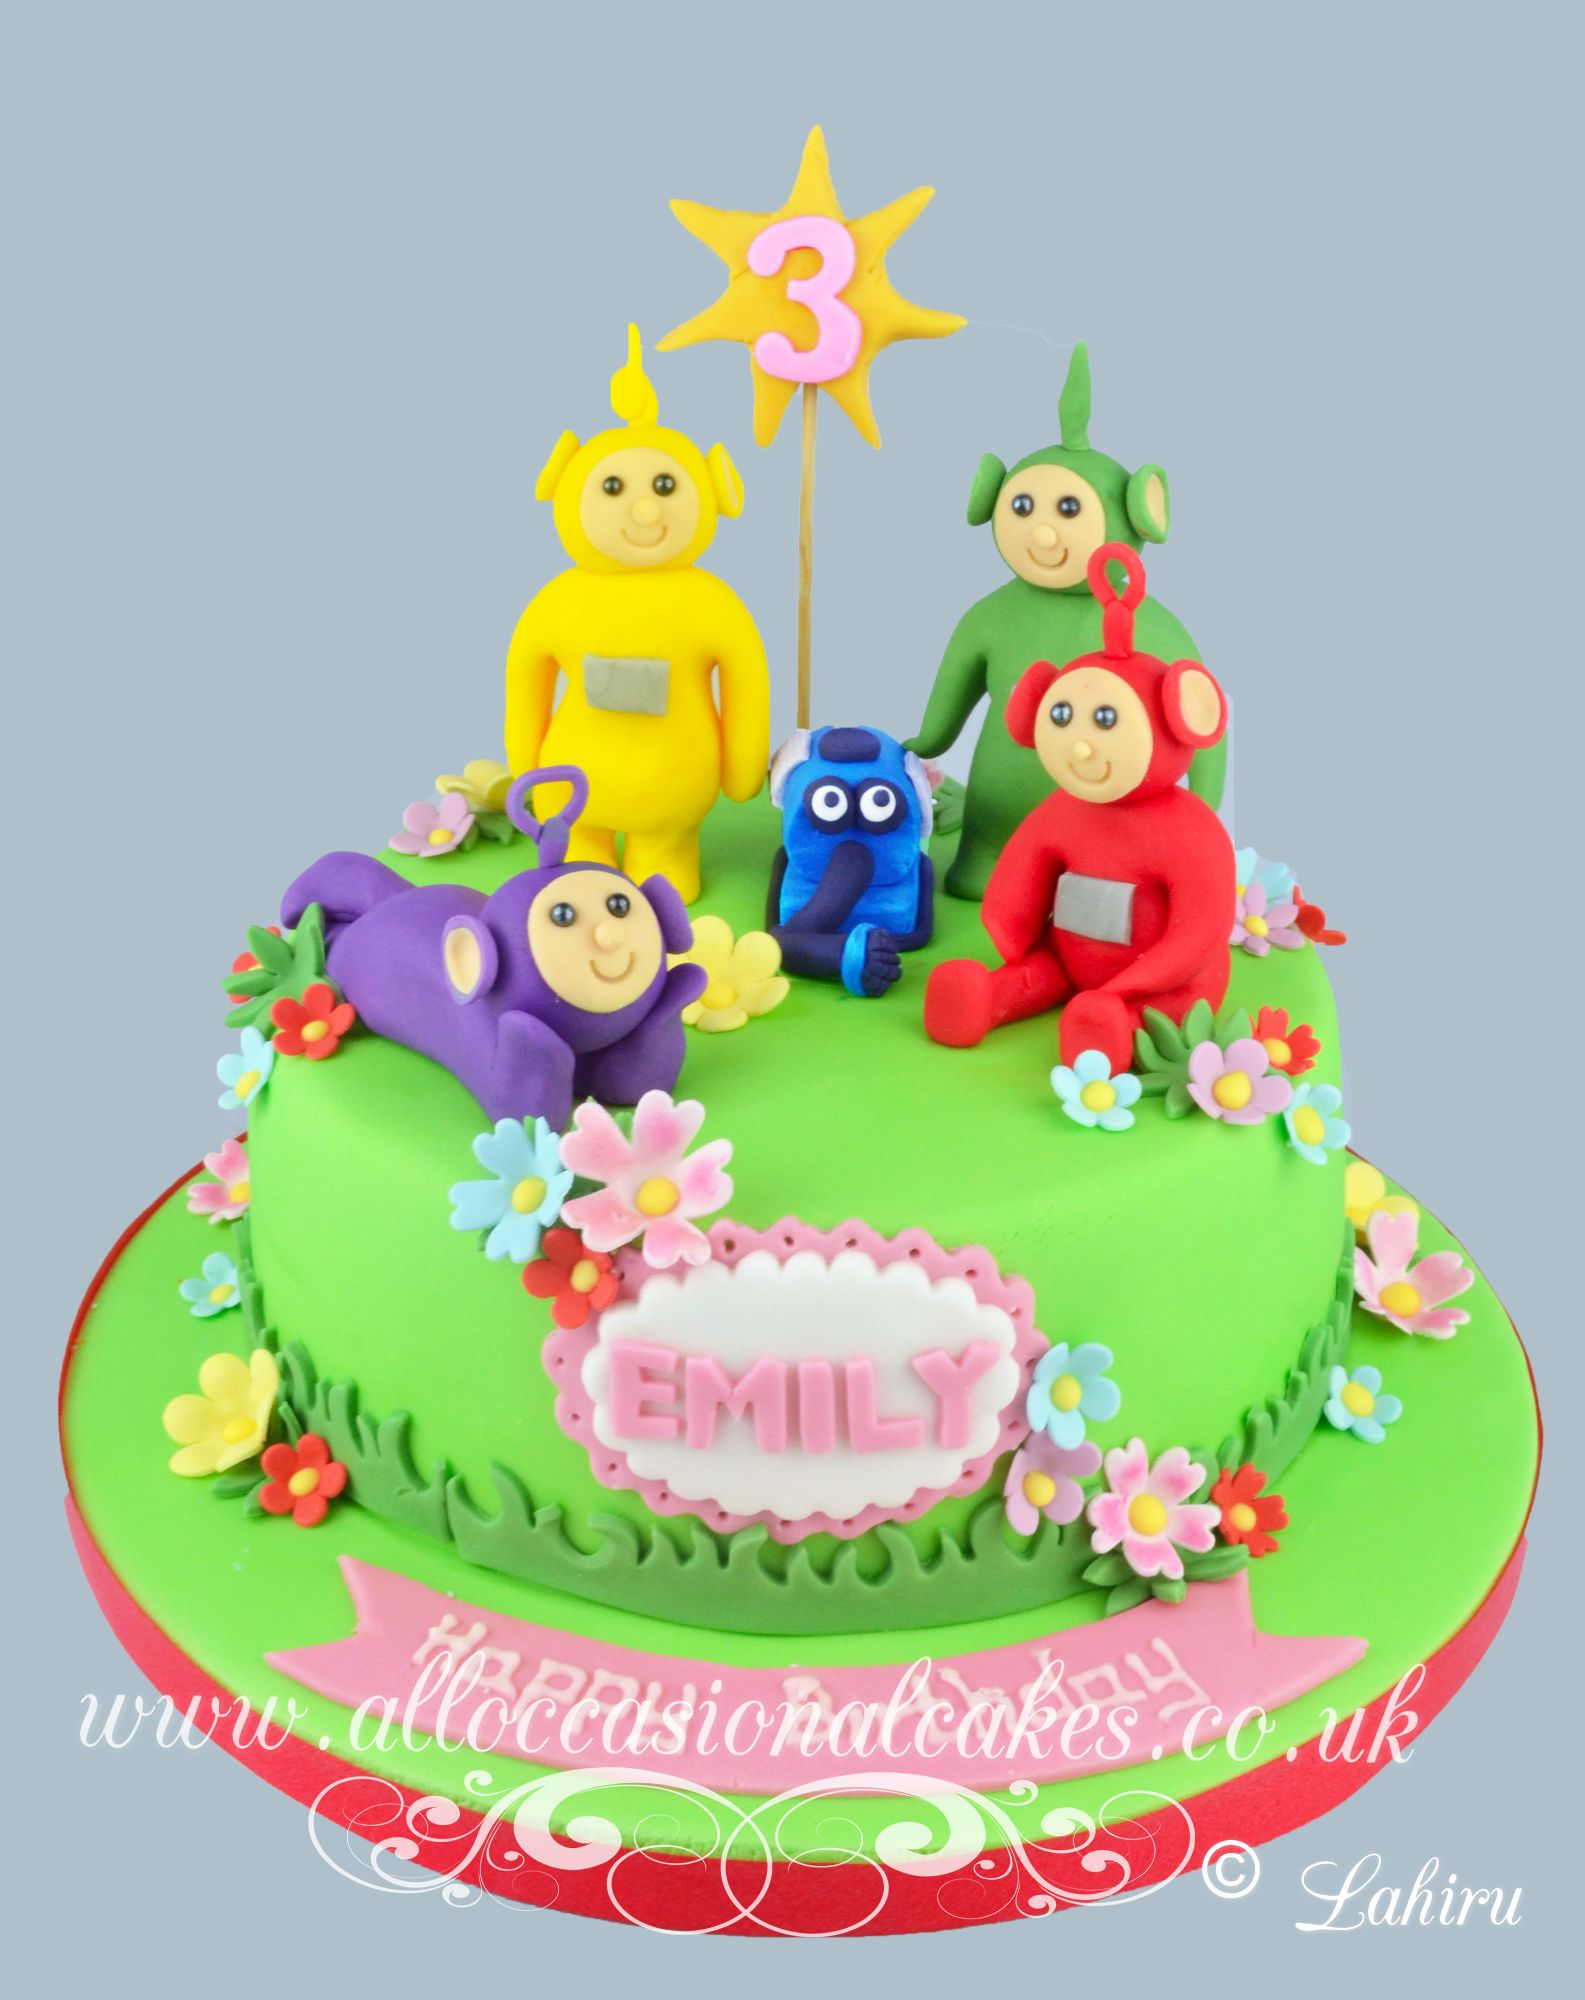 teletubbies theme birthday cake